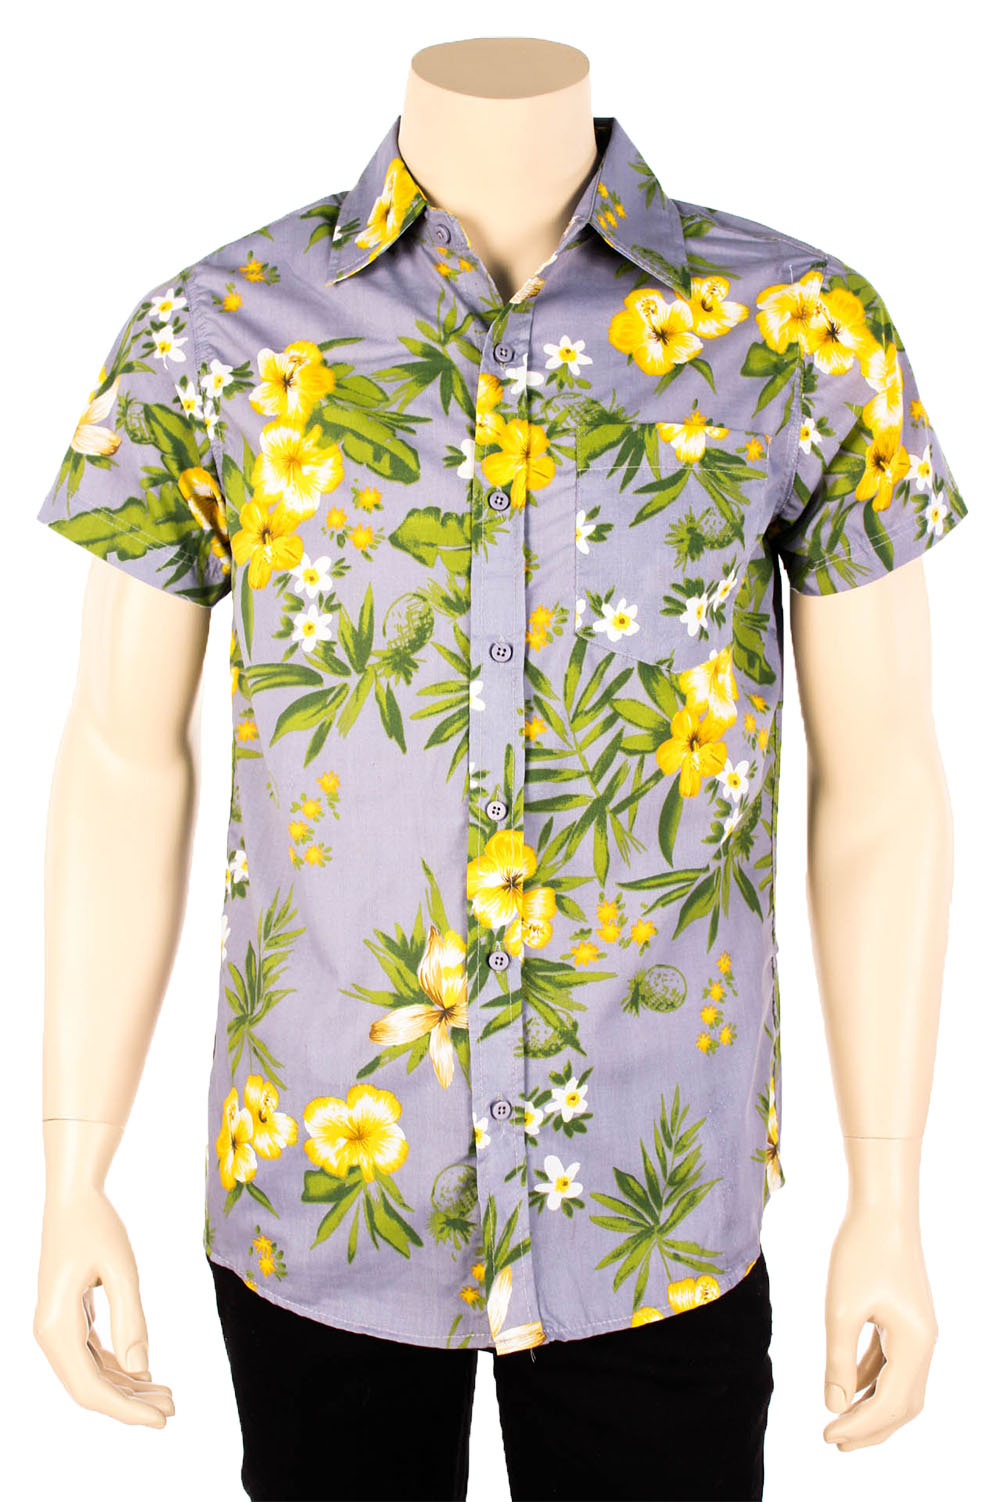 Find great deals on eBay for new hawaiian shirts. Shop with confidence.